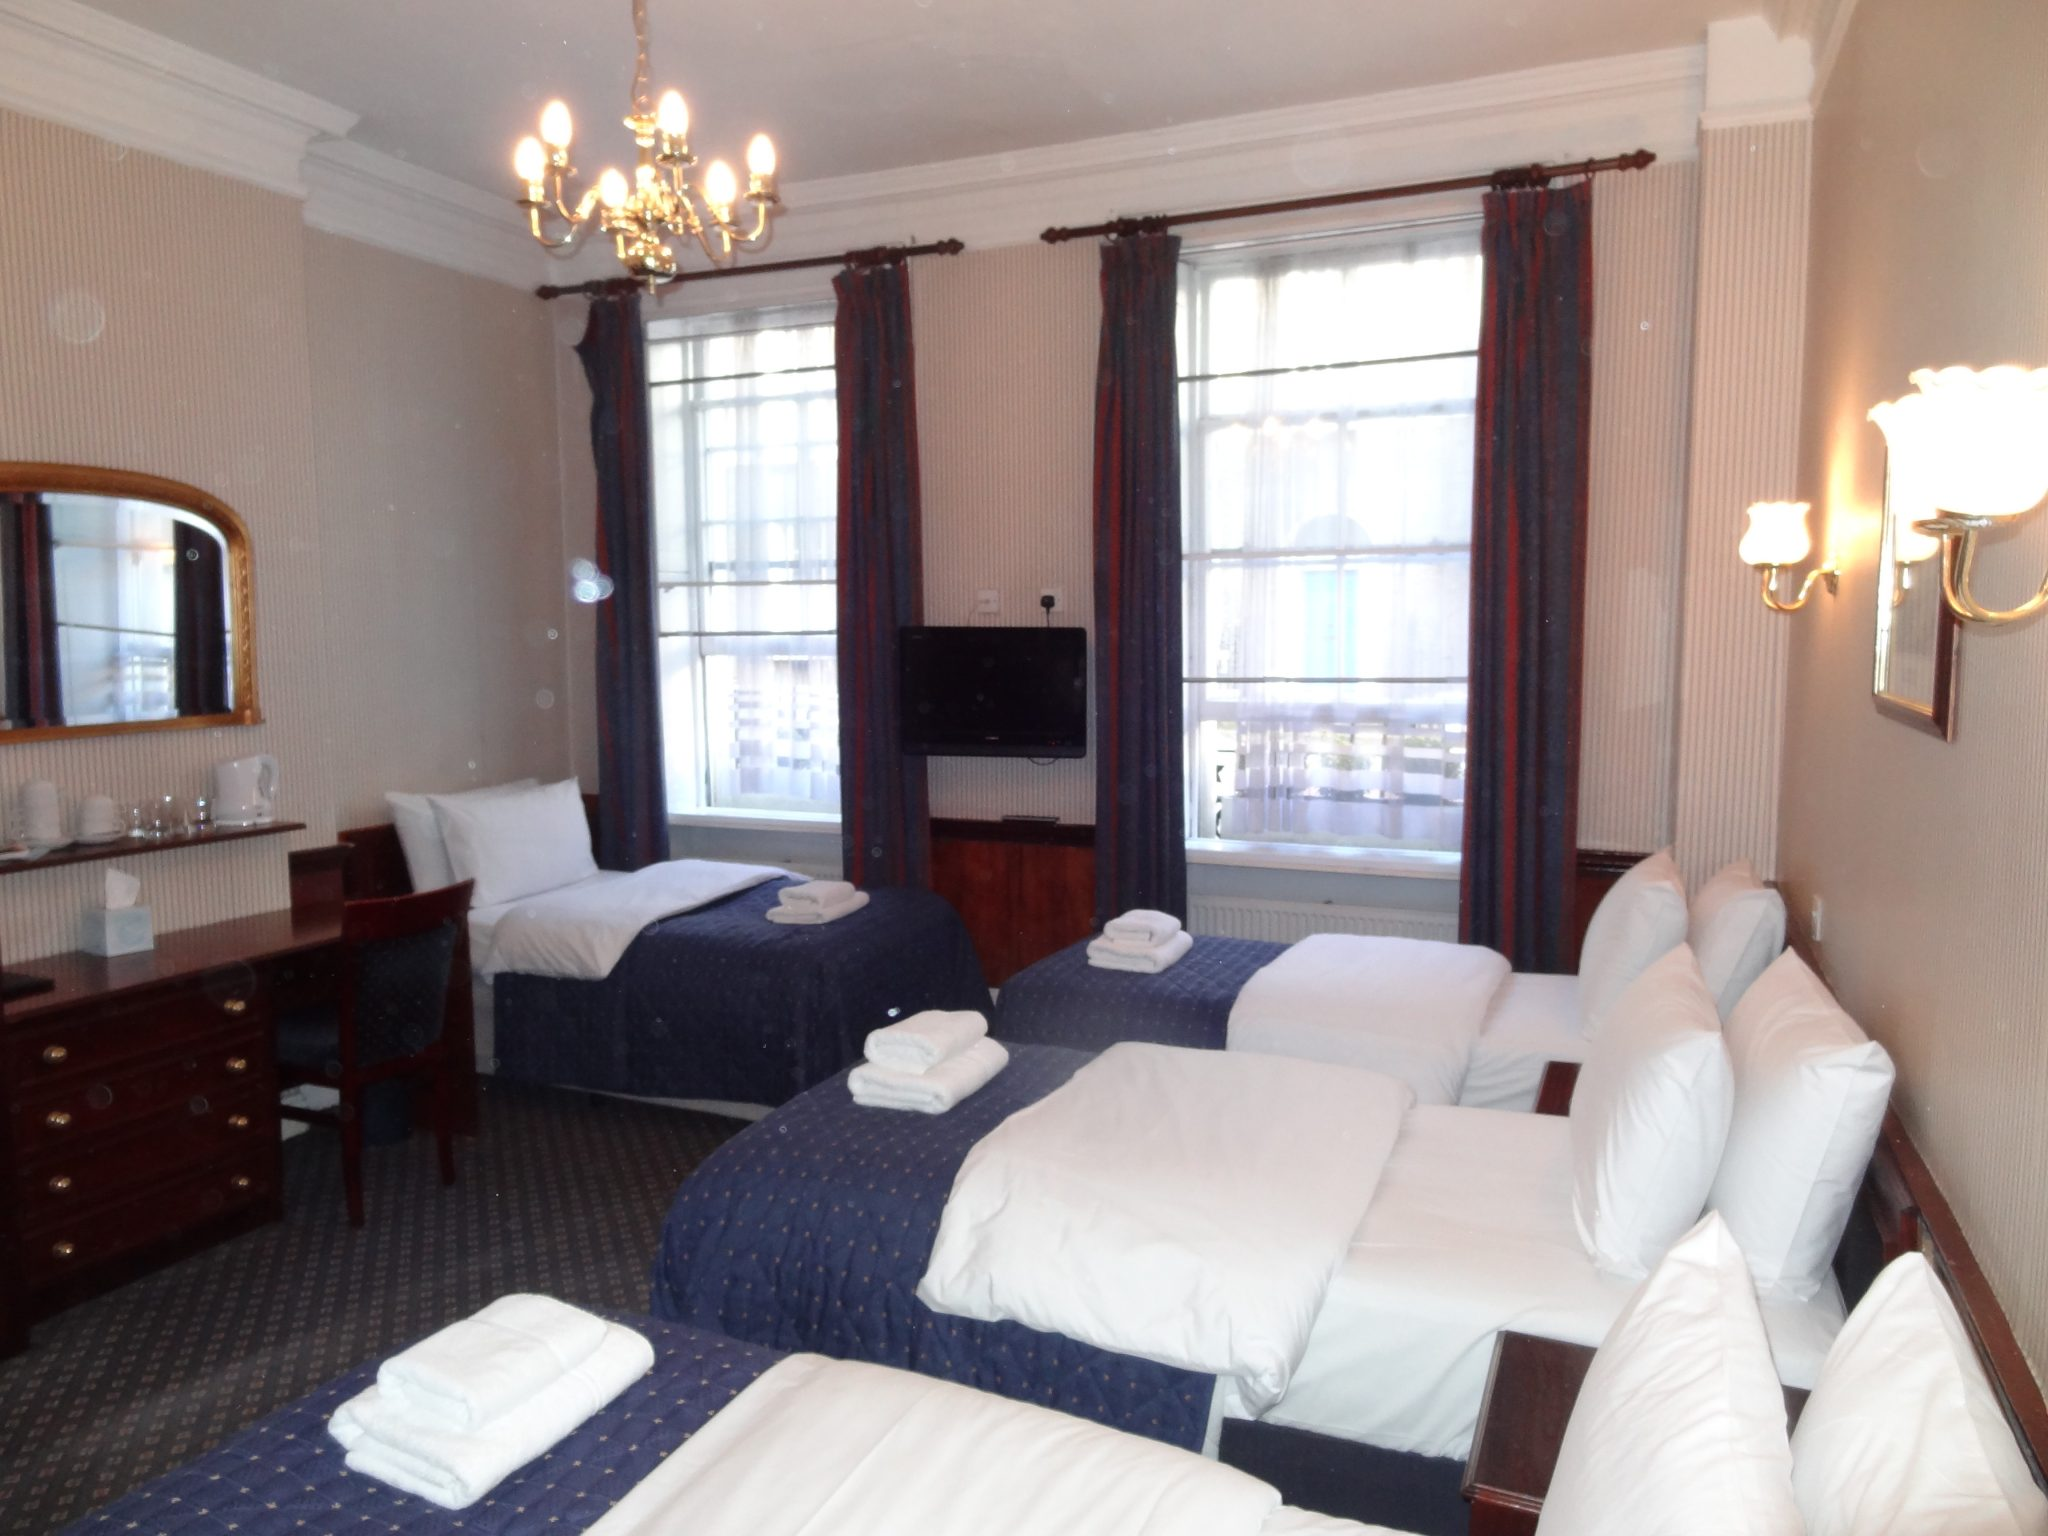 Best family hotel rooms london uk affordable family for Family room accommodation